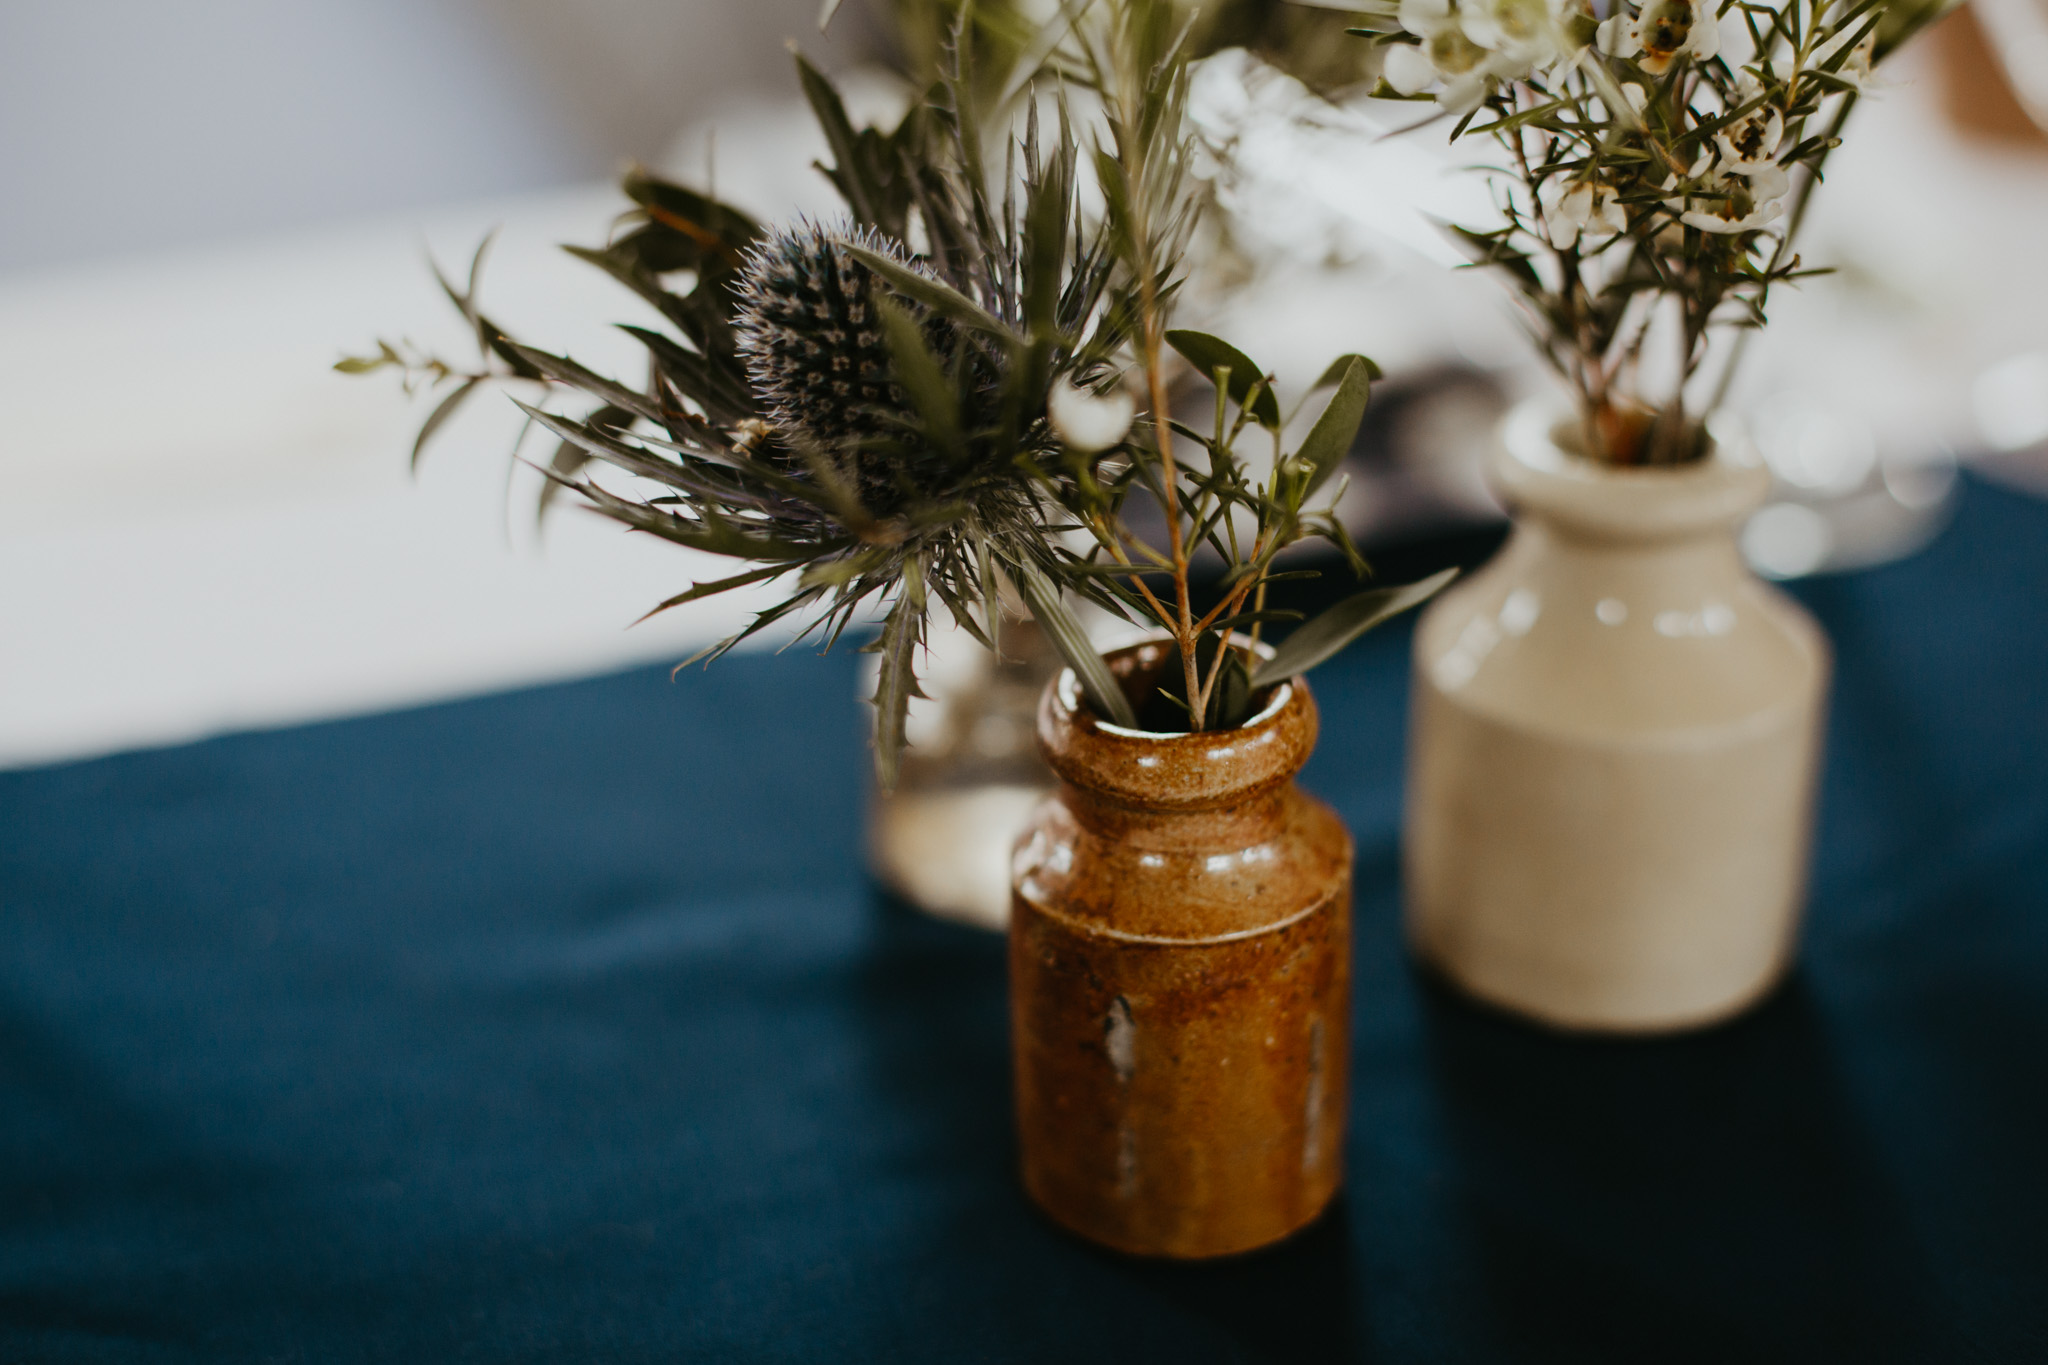 Katy & Matt's North London Eco Wedding captured by Lilly Sells Photography